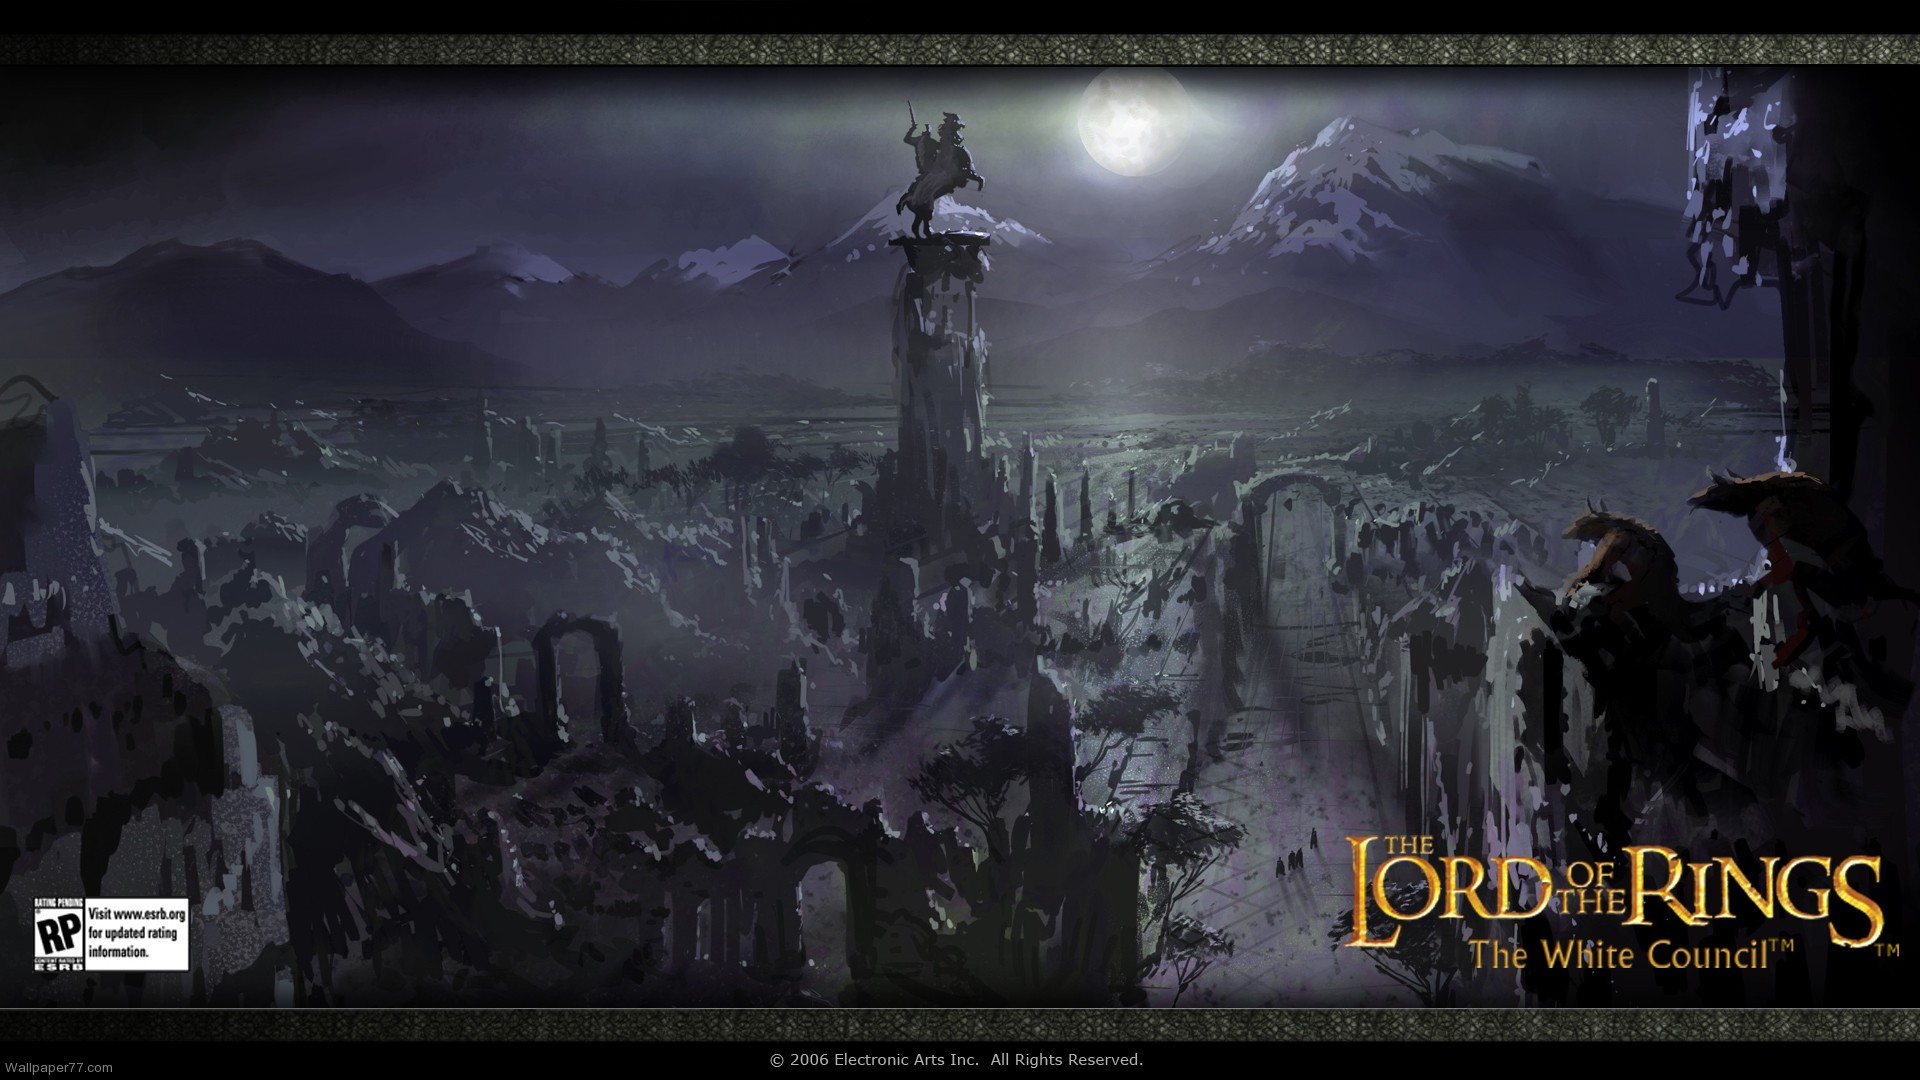 Lord-of-the-Rings-Wallpaper-4-lord-of-the-rings-wallpaperslord-of-the ...